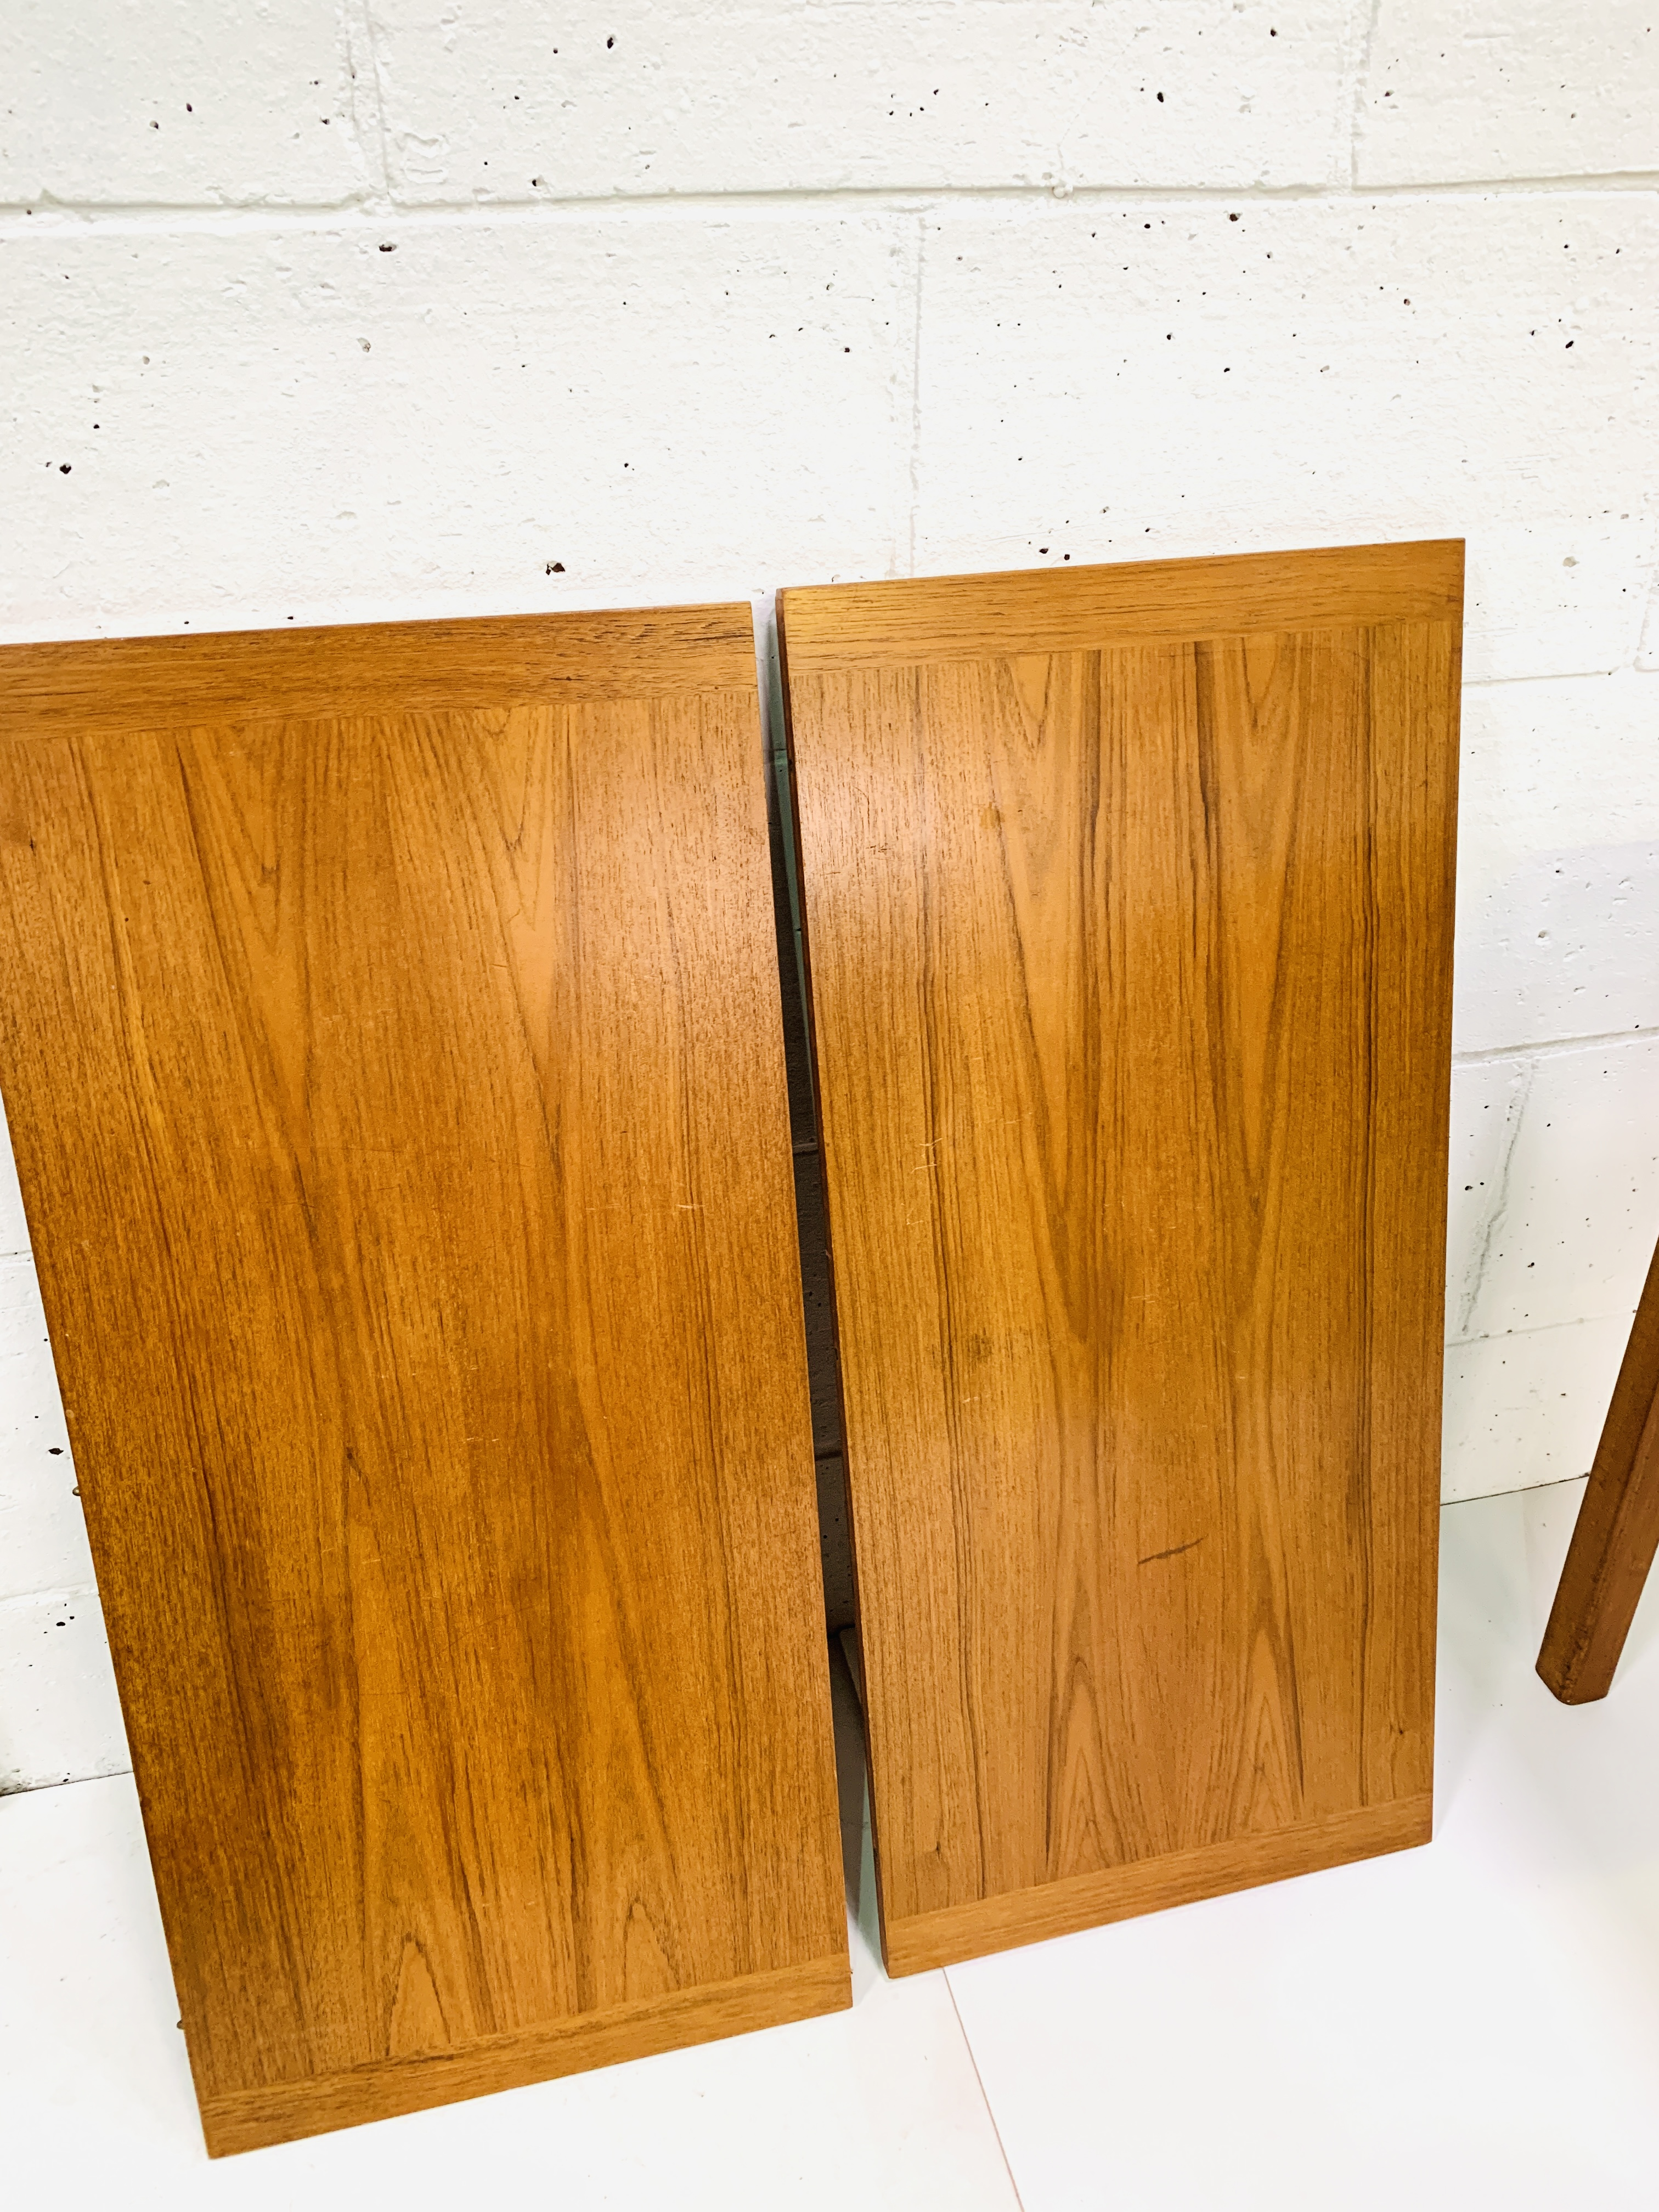 Teak extendable dining table - Image 4 of 4